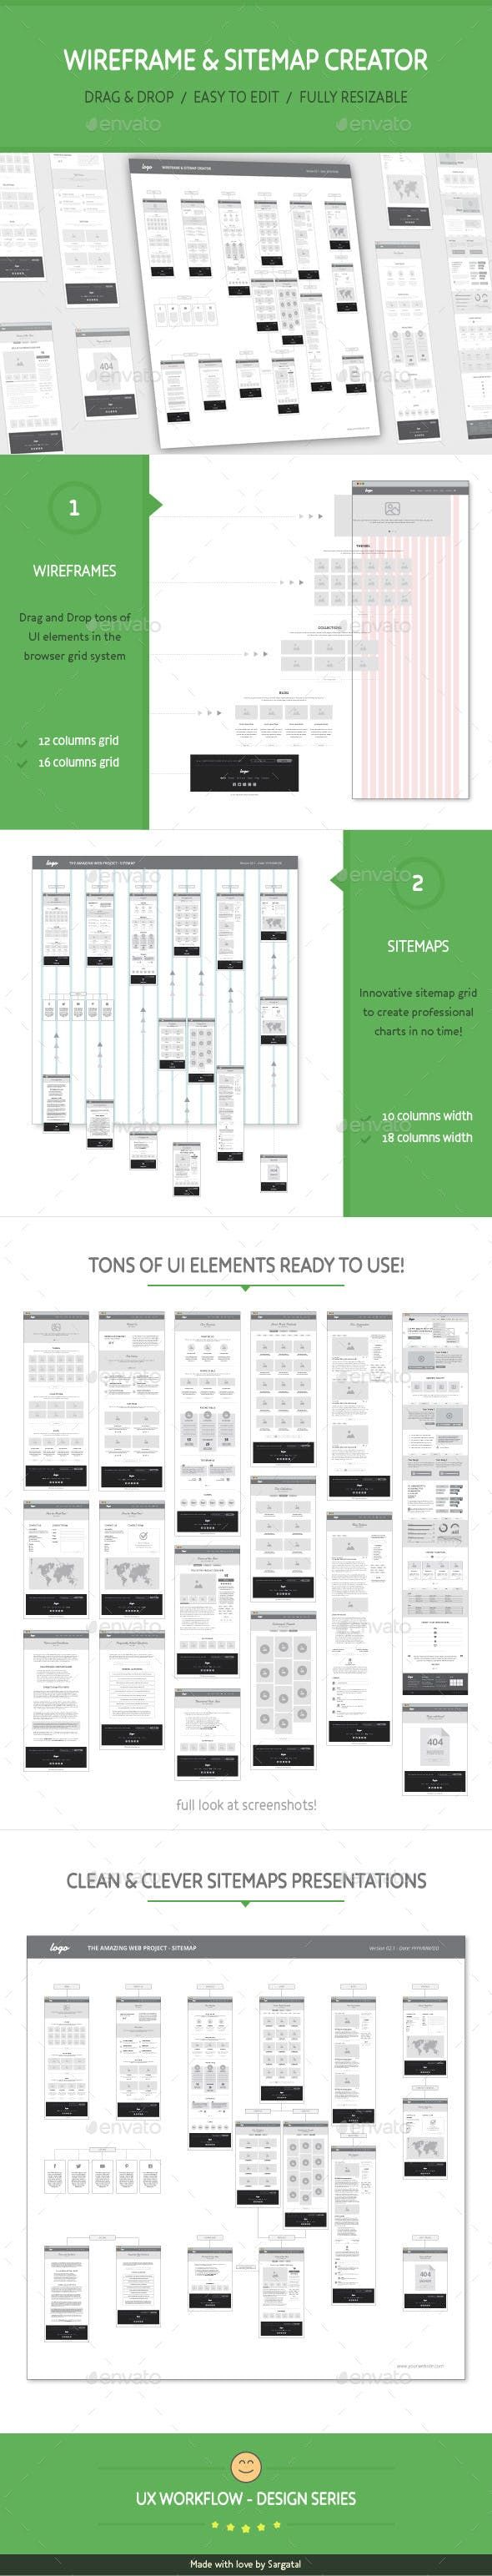 UX Workflow Wireframe and Sitemap Creator by Sargatal